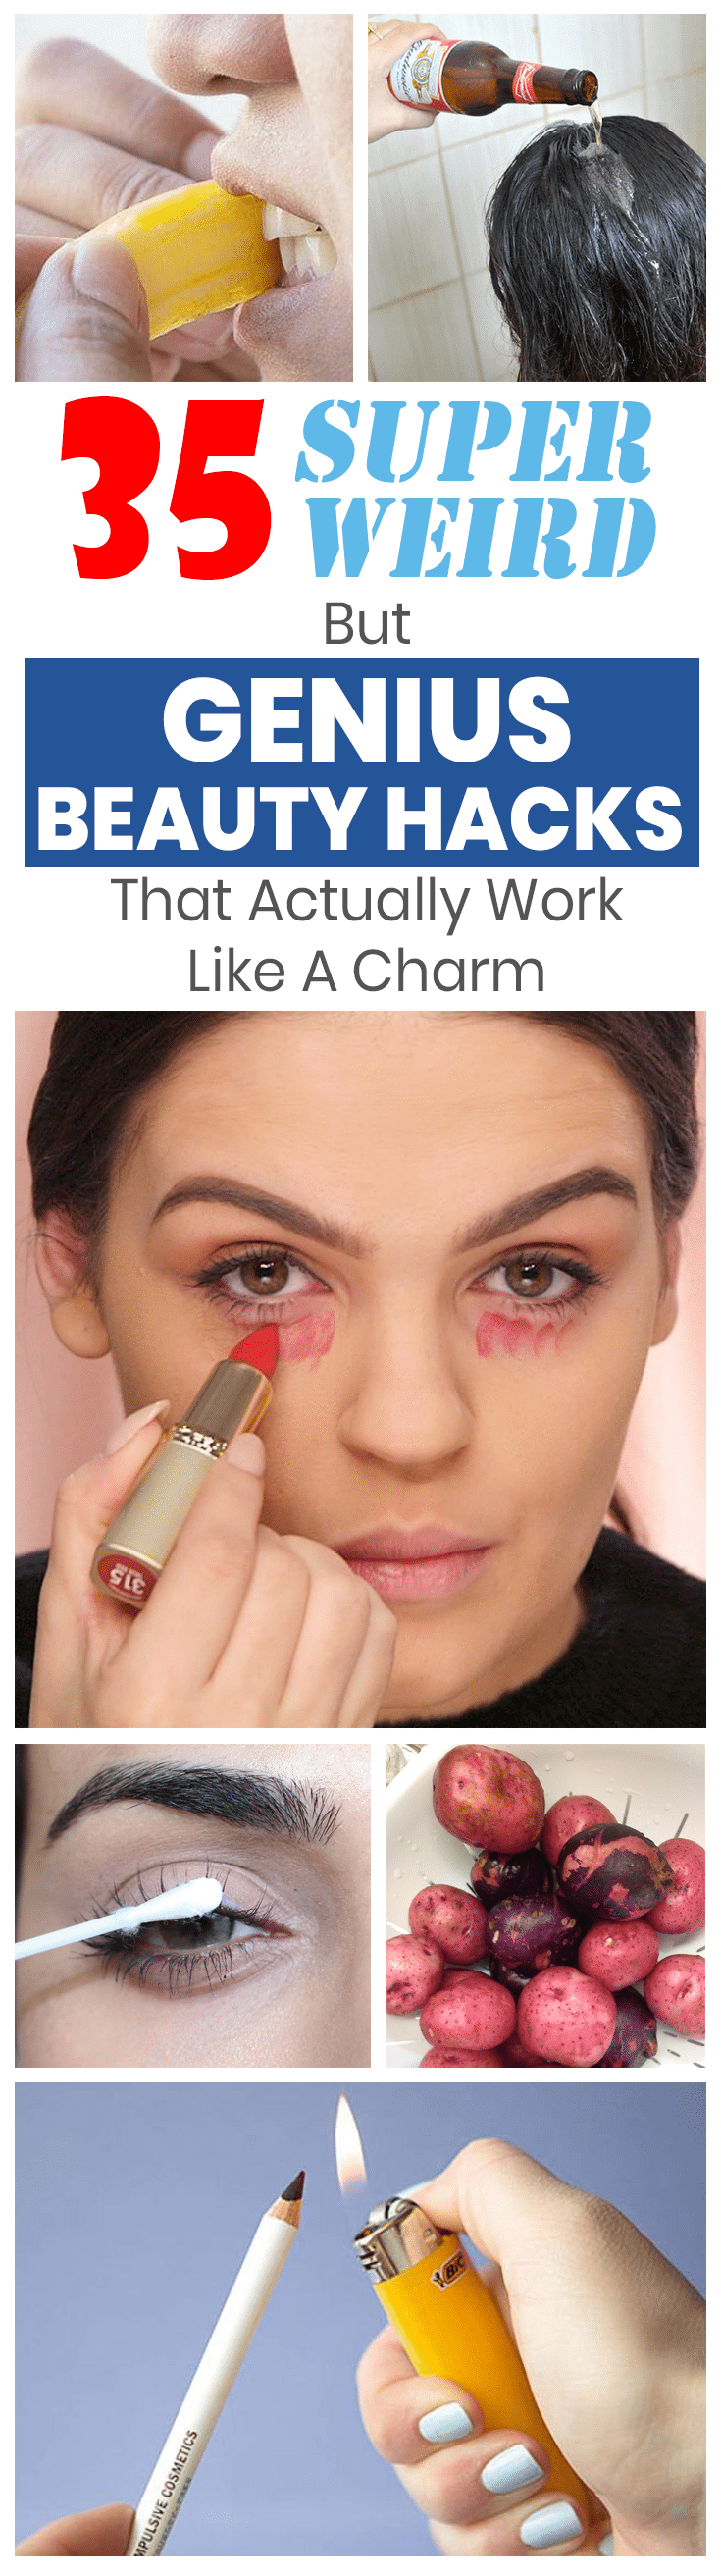 20 Unconventional Beauty Hacks Found at Home